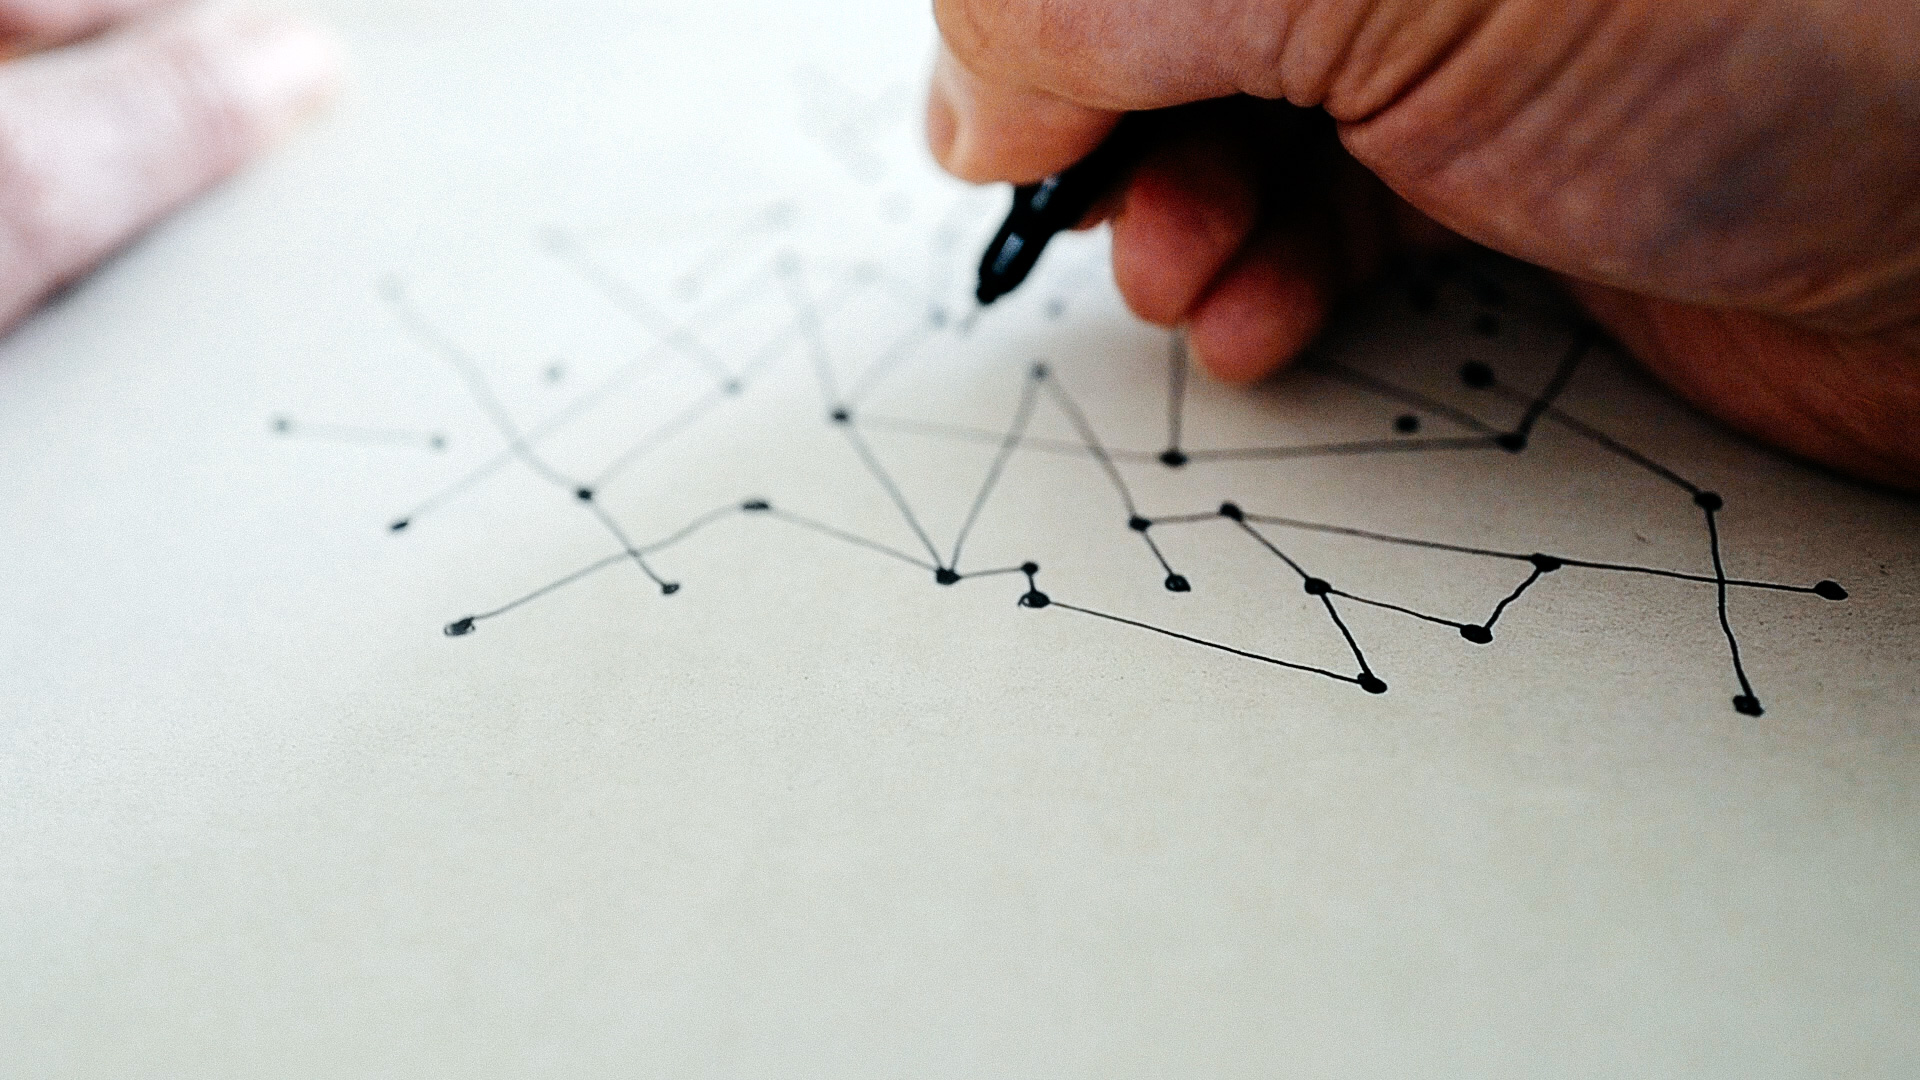 A hand with a pen, connecting lines and drawing circles